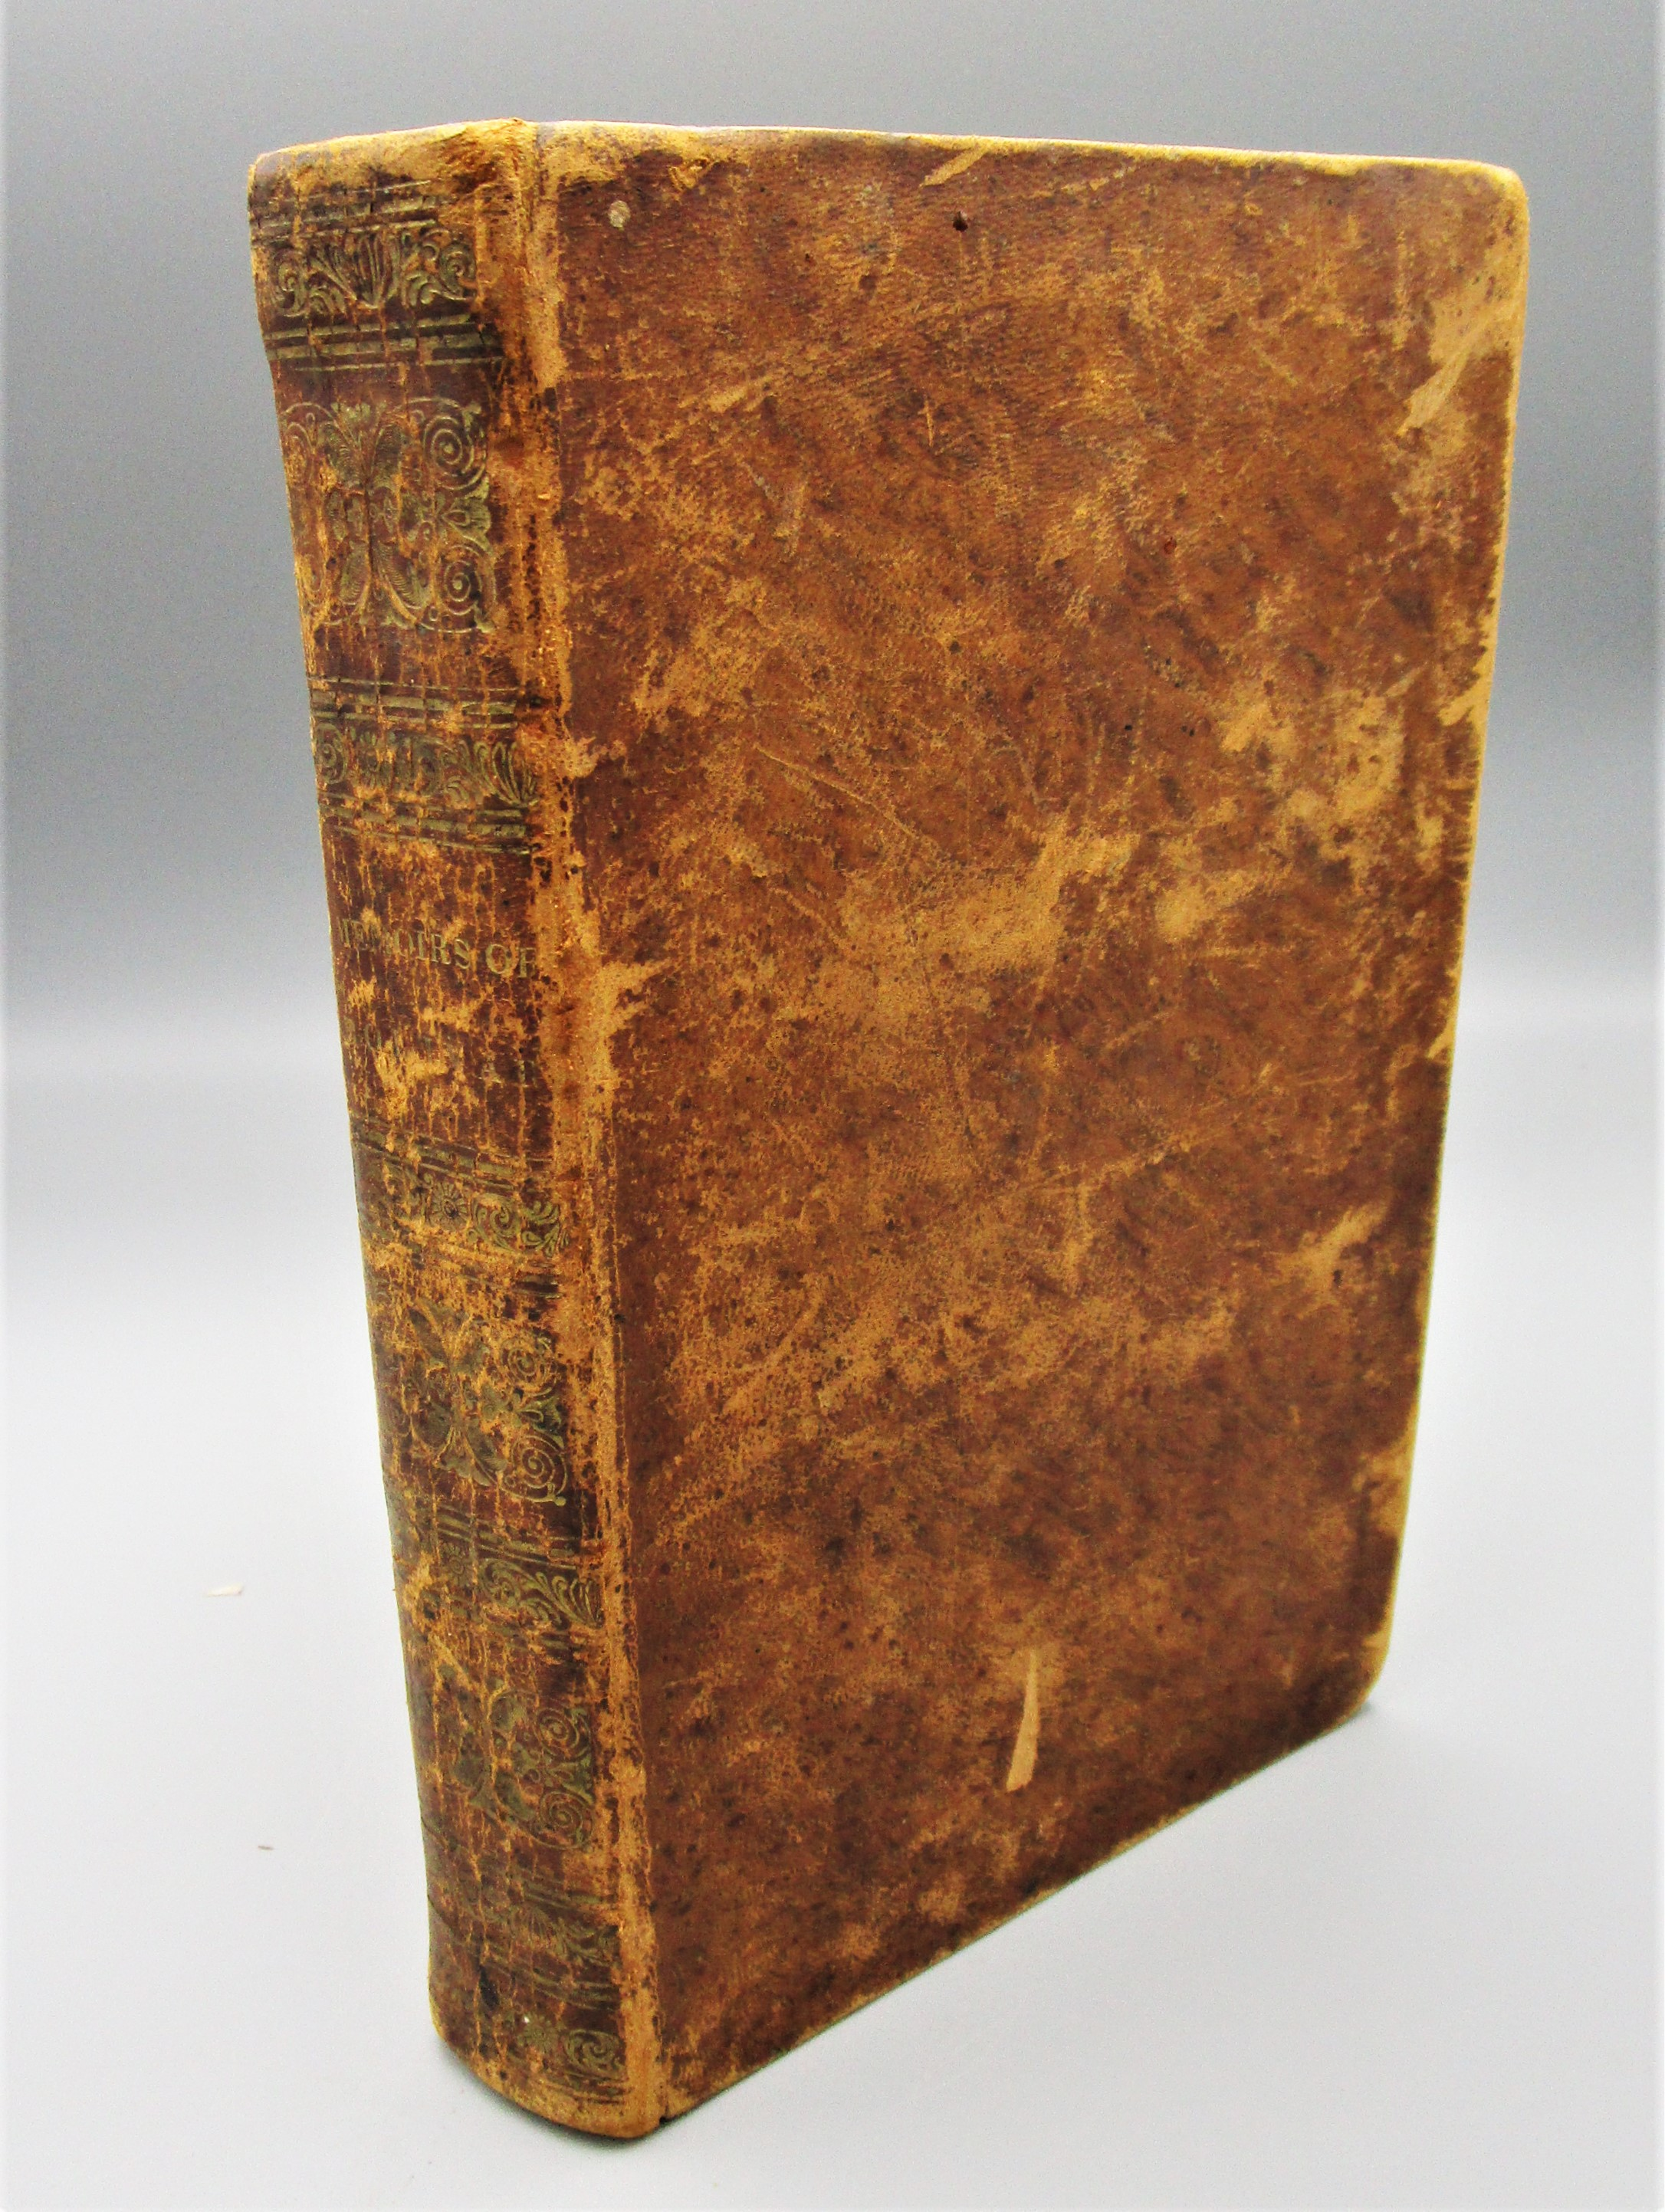 MEMOIRS OF SIMON BOLIVAR, by H. L. V. Ducoudray Holsten - 1829 First Edition